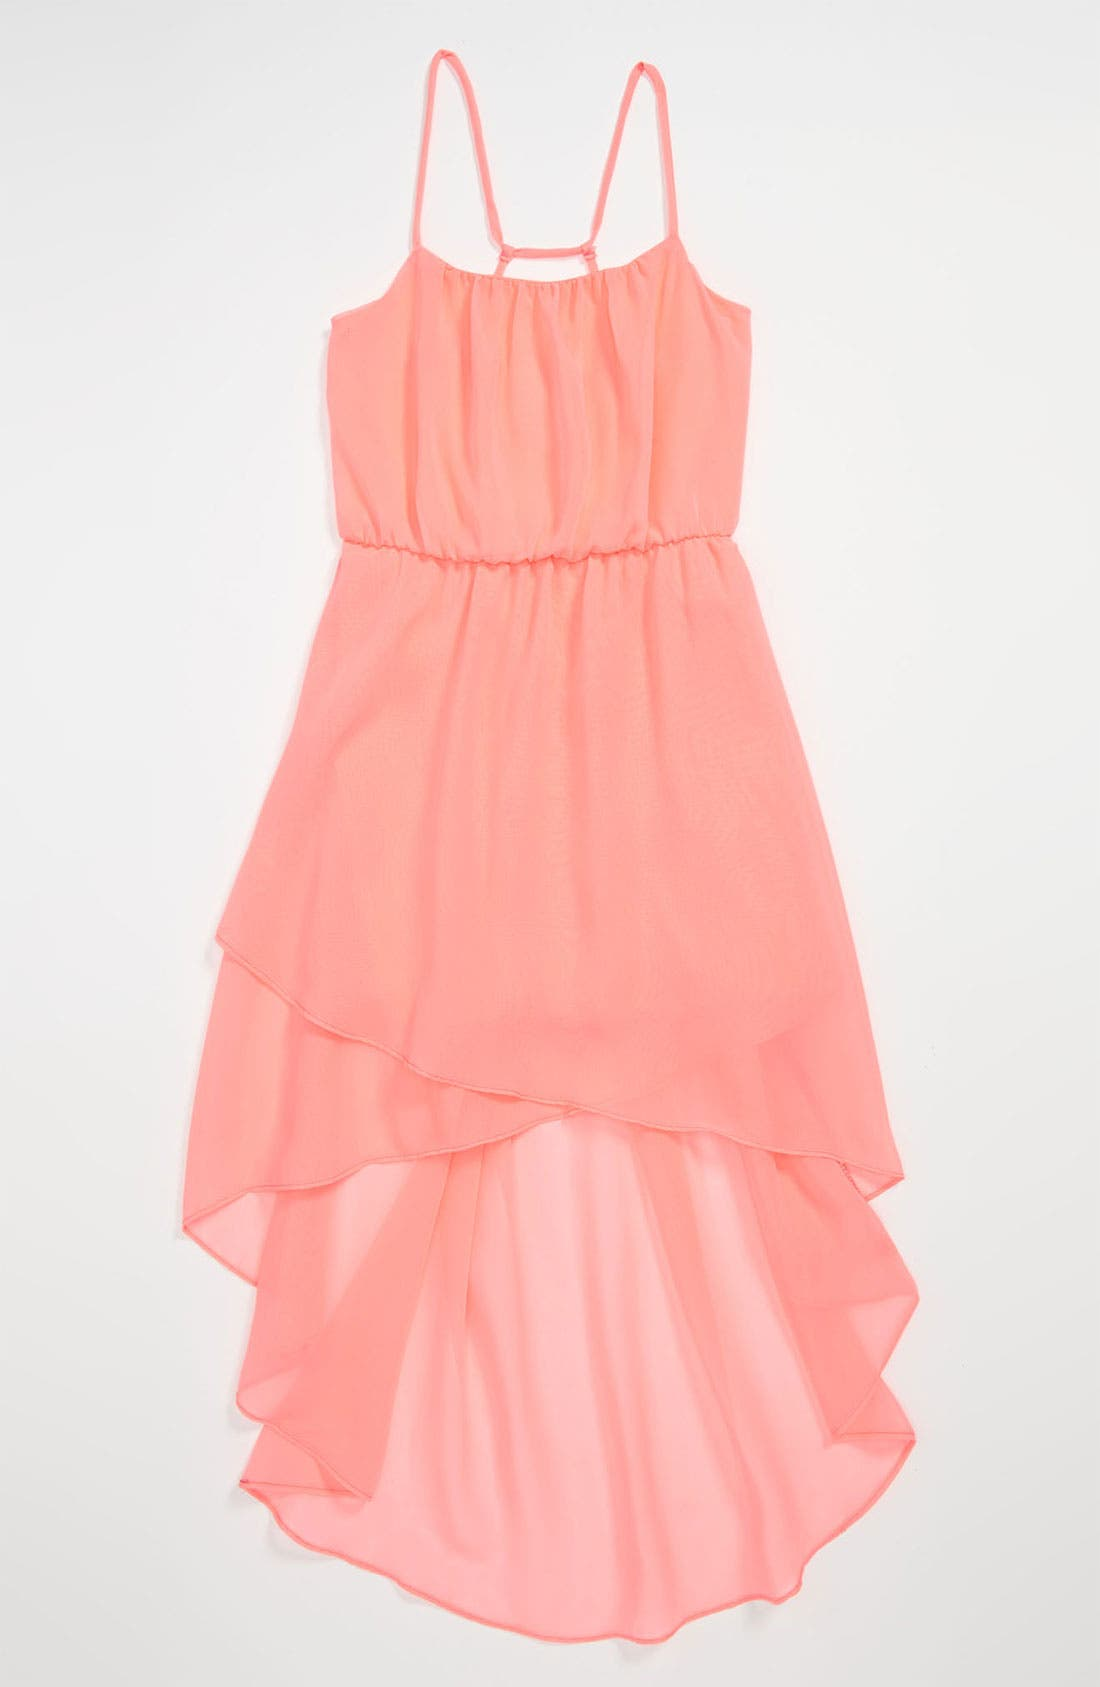 Main Image - Kiddo Spaghetti Strap High/Low Dress (Big Girls)